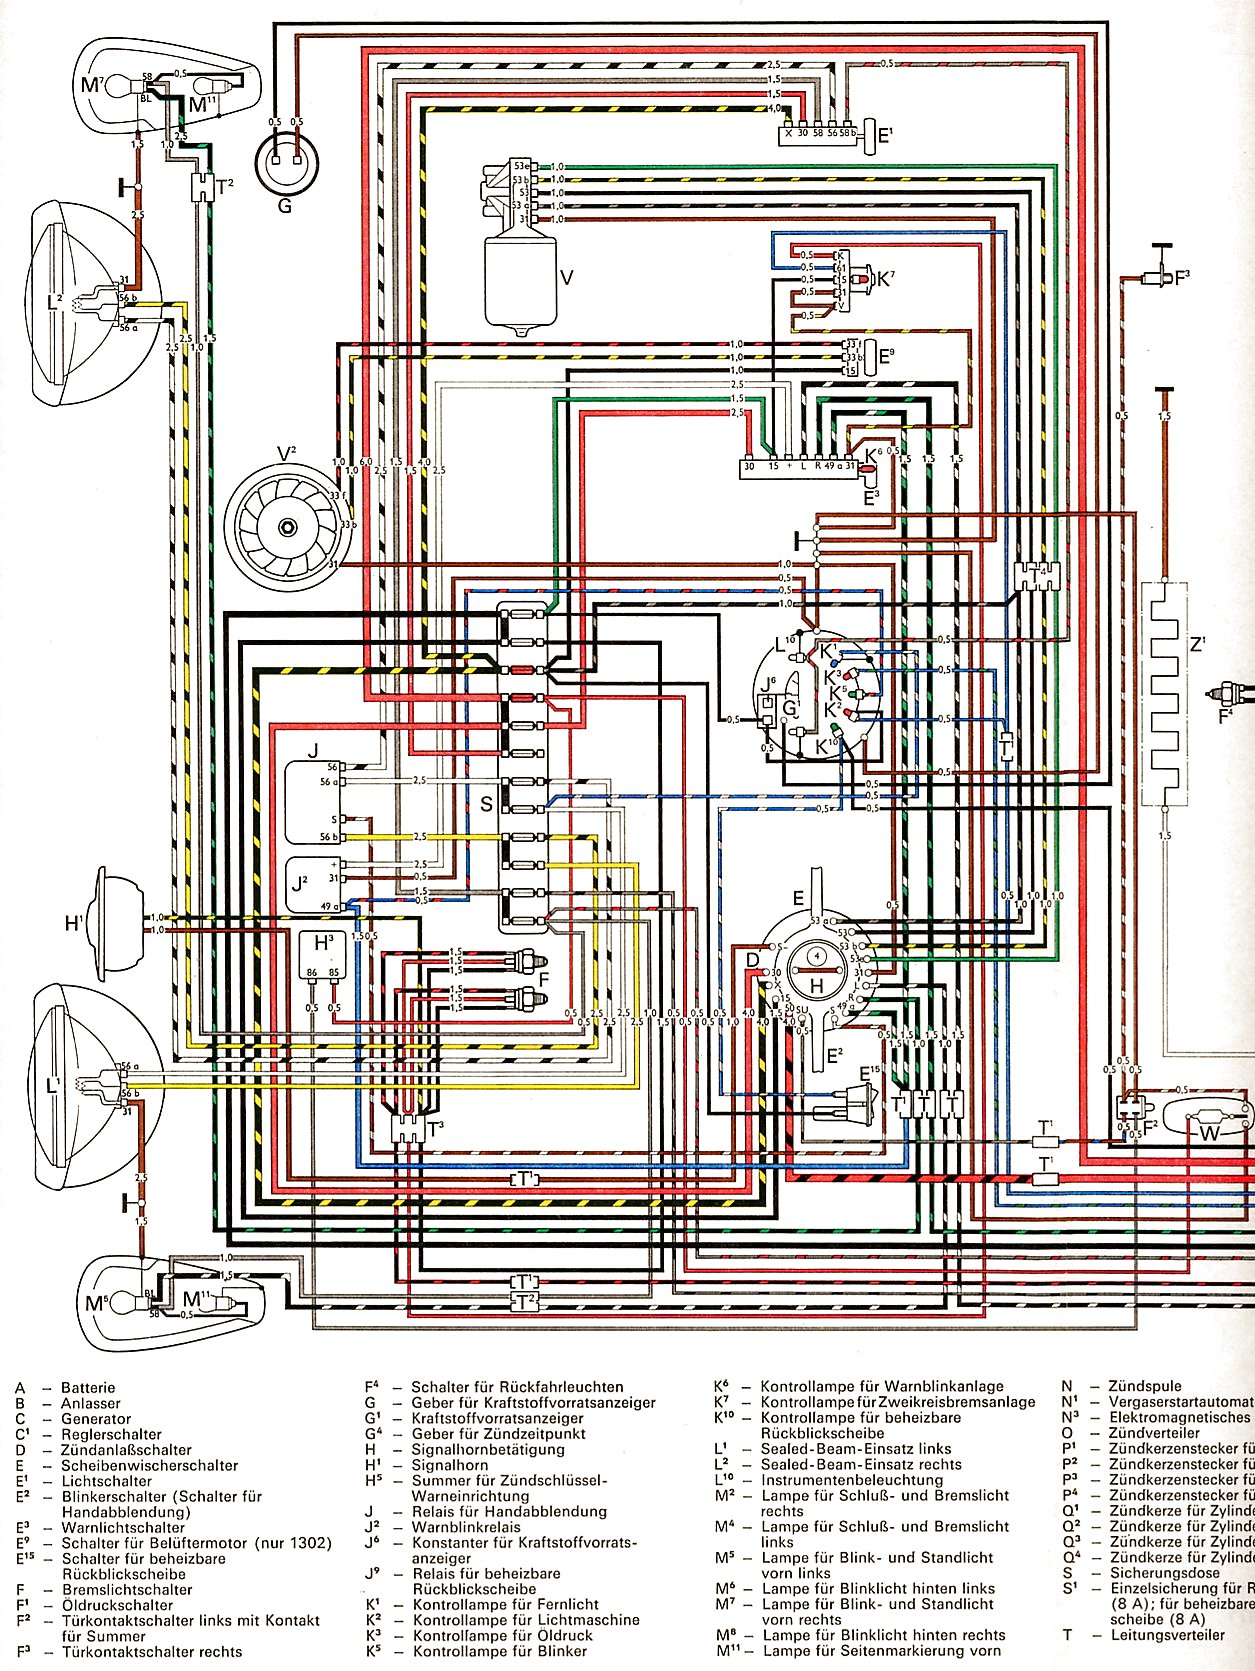 74 Beetle Wiring Diagram For Lights On Reveolution Of 73 Free Picture Schematic Need 1974 Standard Fuse Panel Help Shoptalkforums Com Rh 1964 Vw 1973 Volkswagen